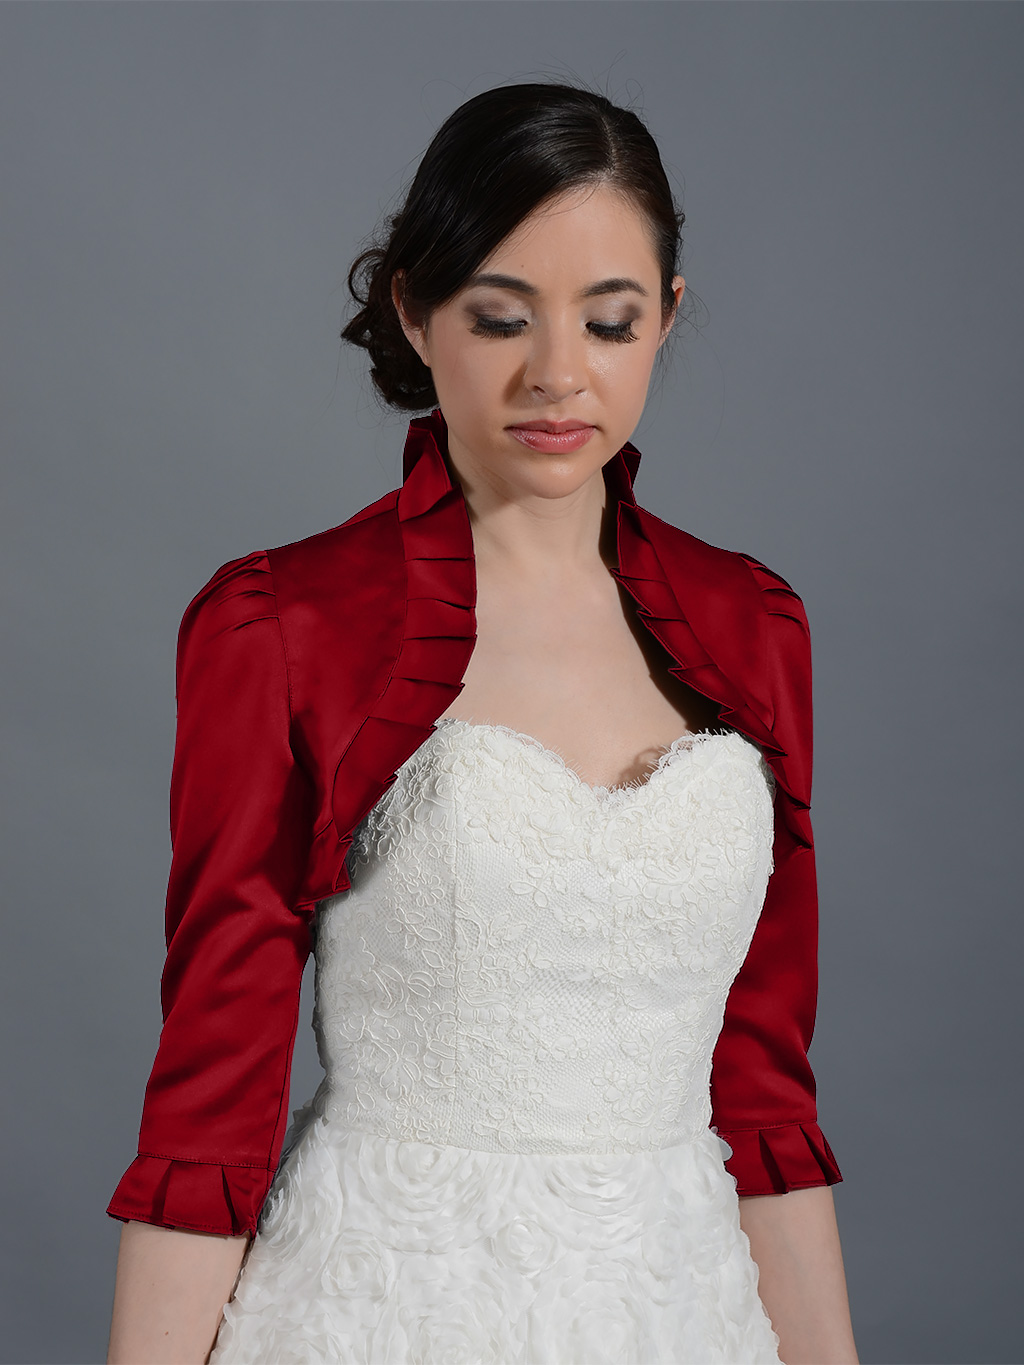 Wine Red 3/4 sleeve wedding satin bolero jacket